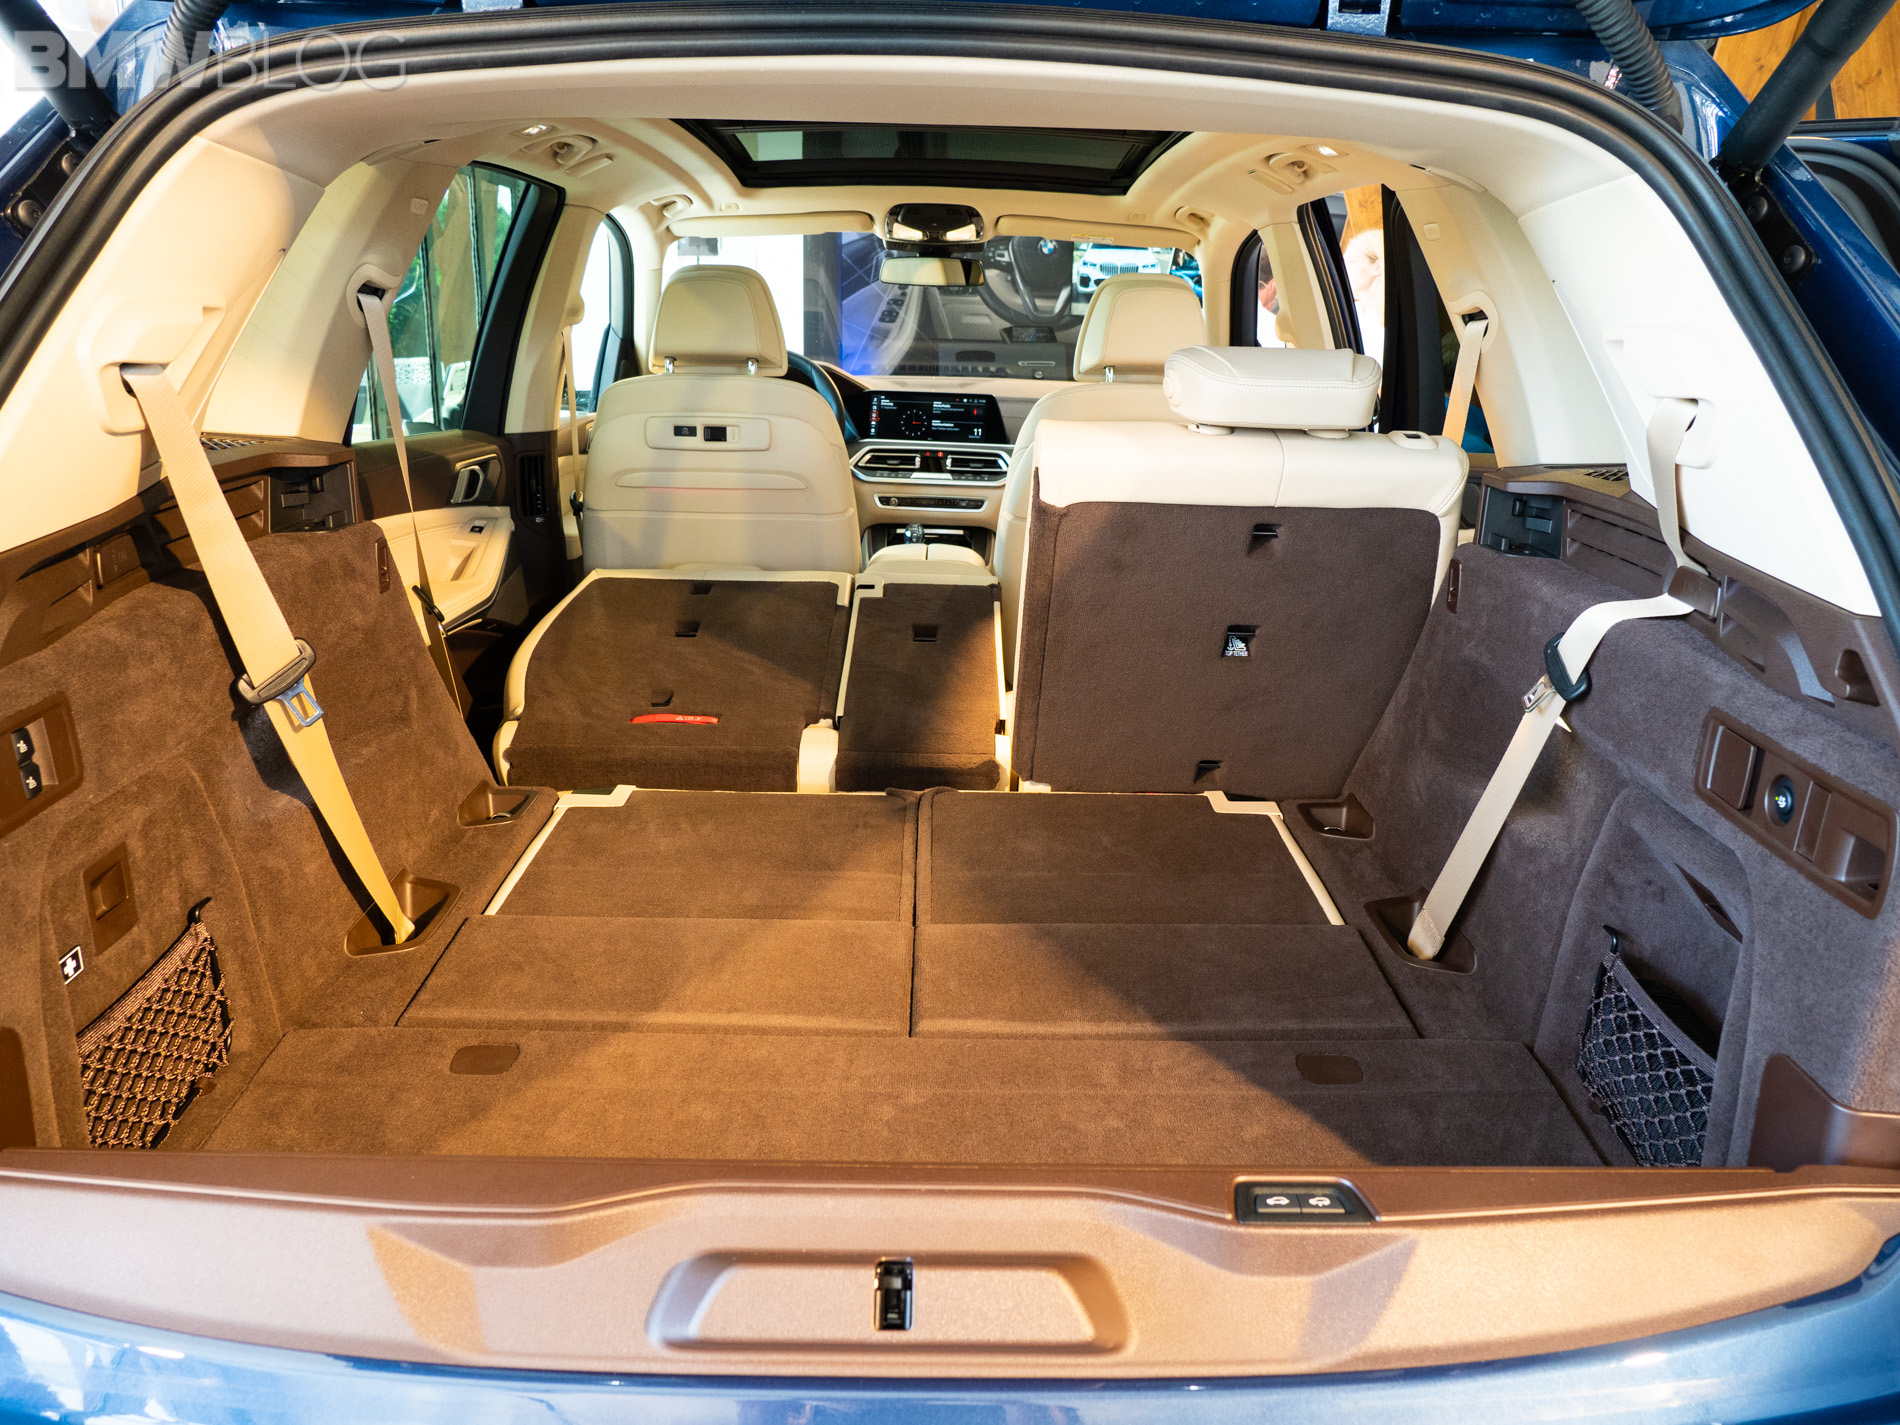 First look at the third-row seat in the new BMW X5